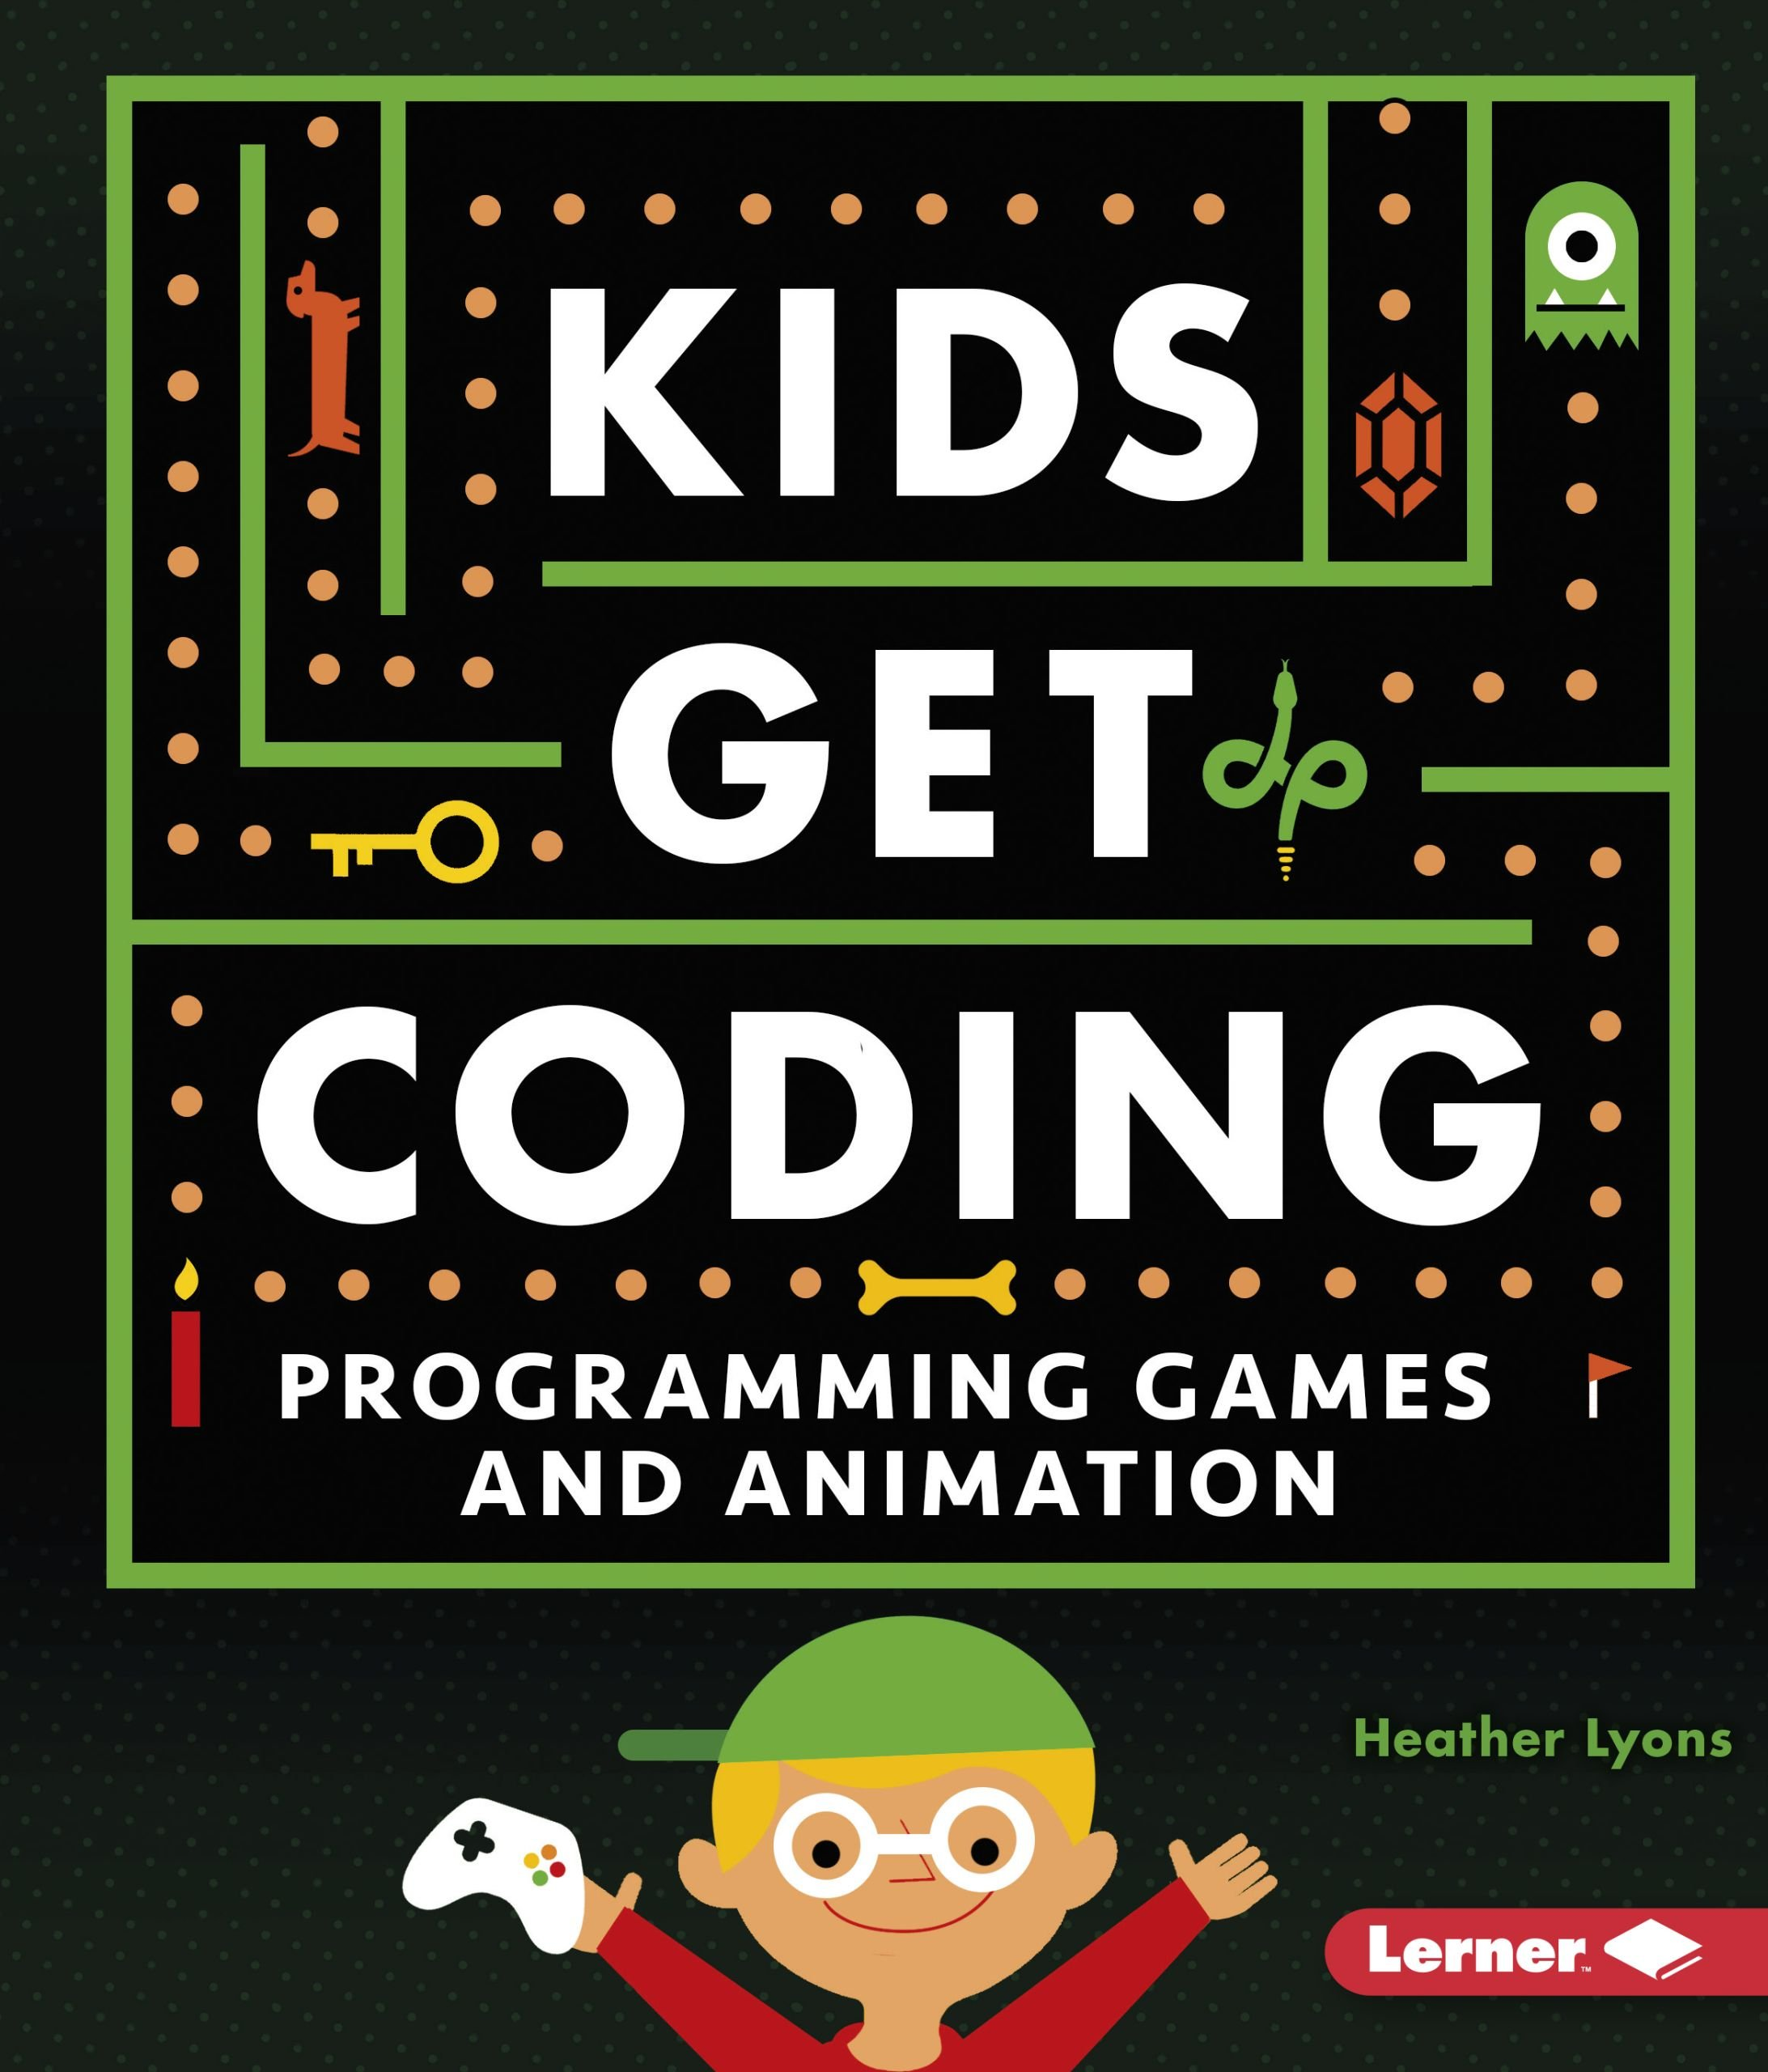 Programming Games And Animation Kids Get Coding Heather Lyons - Programming games